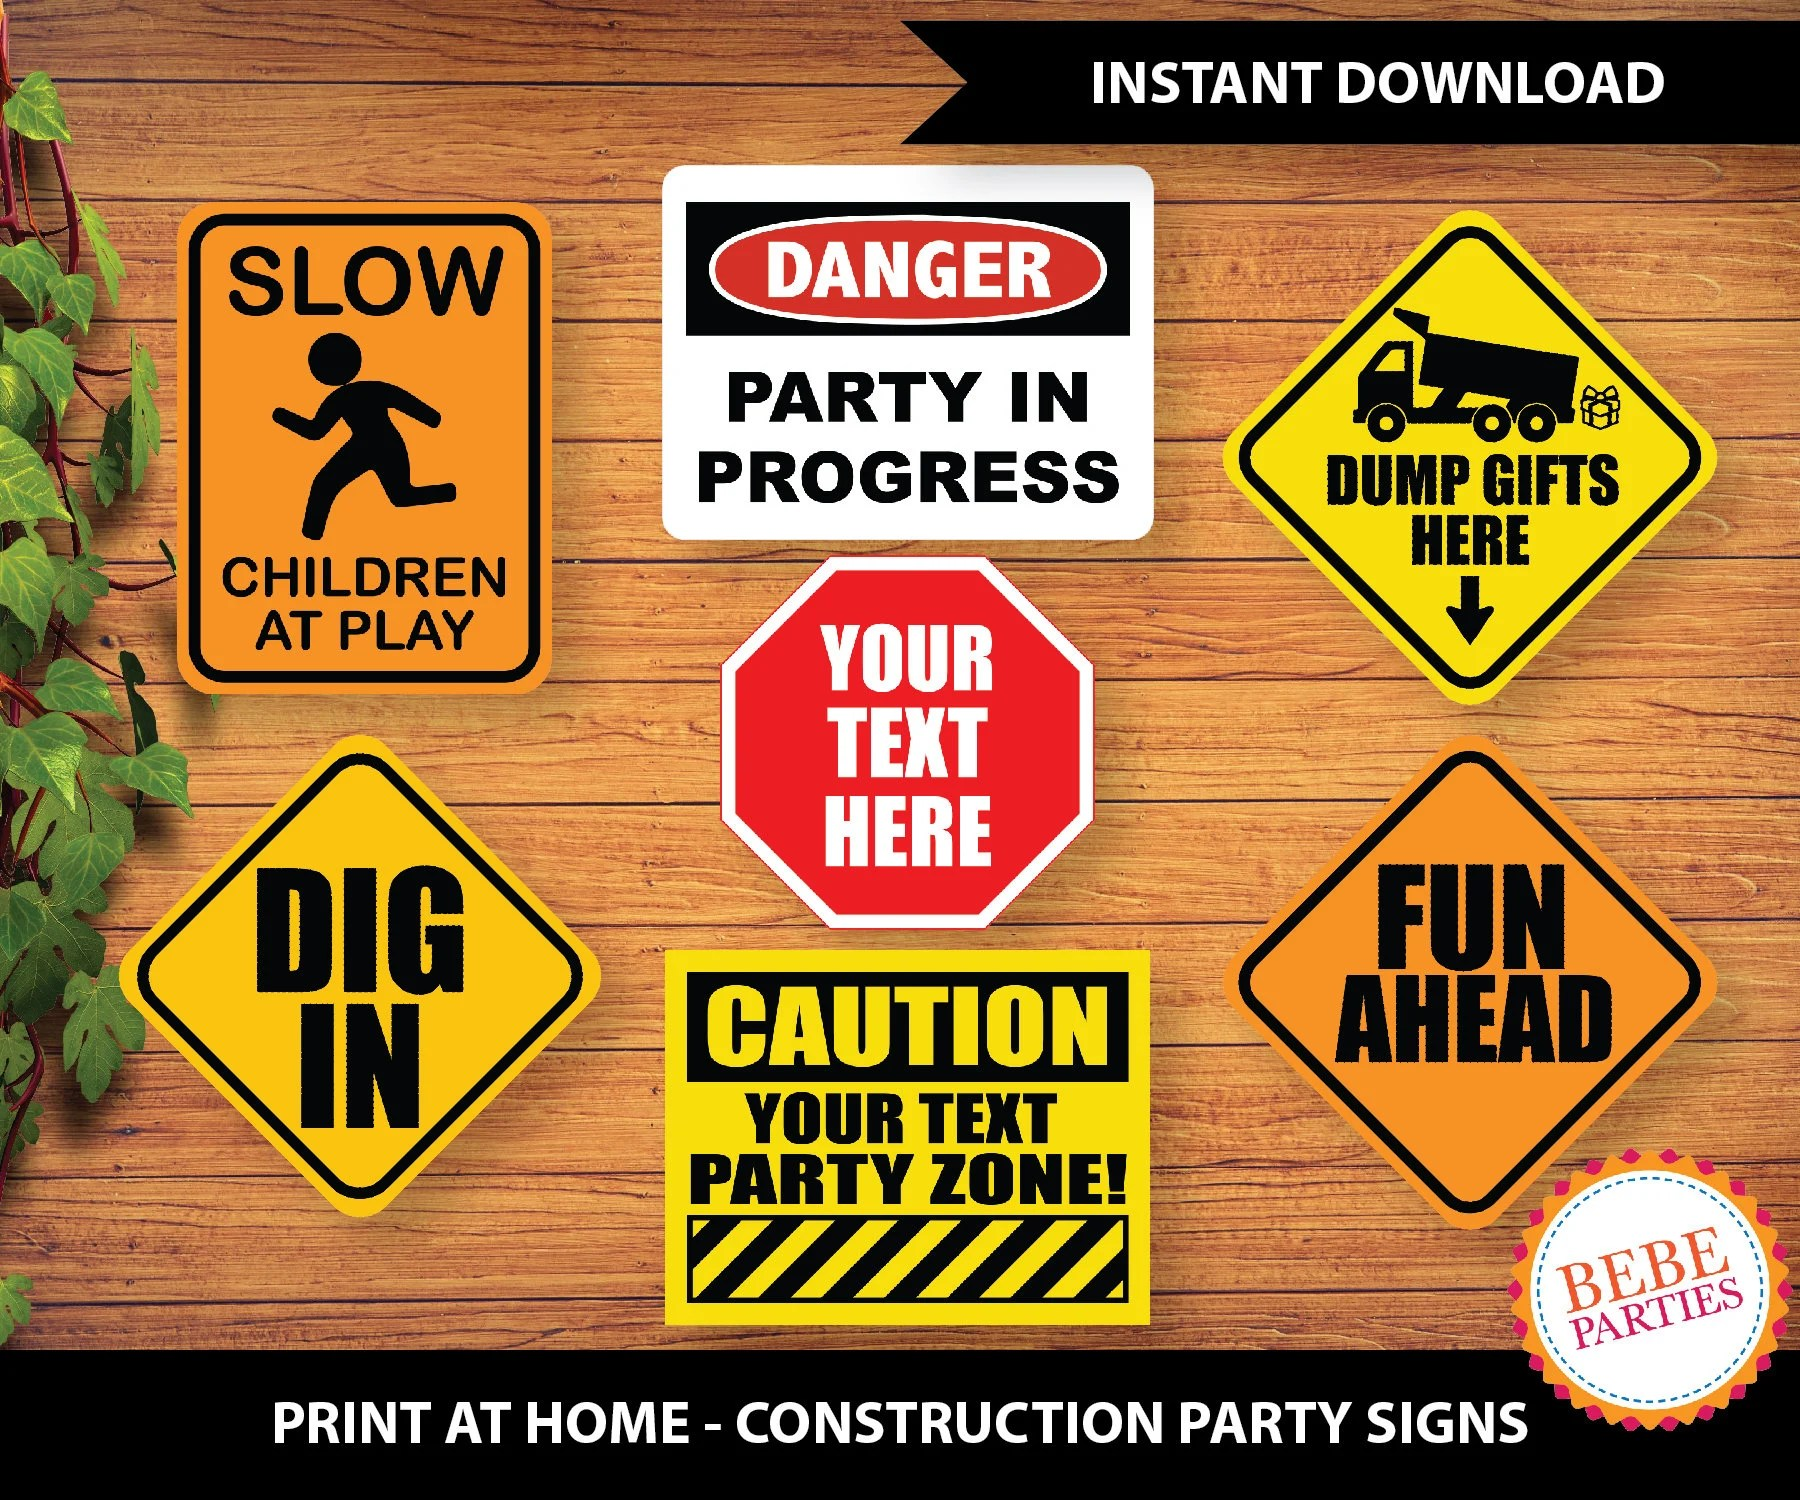 PRINTABLE Construction Party Signs One Zipped File Etsy